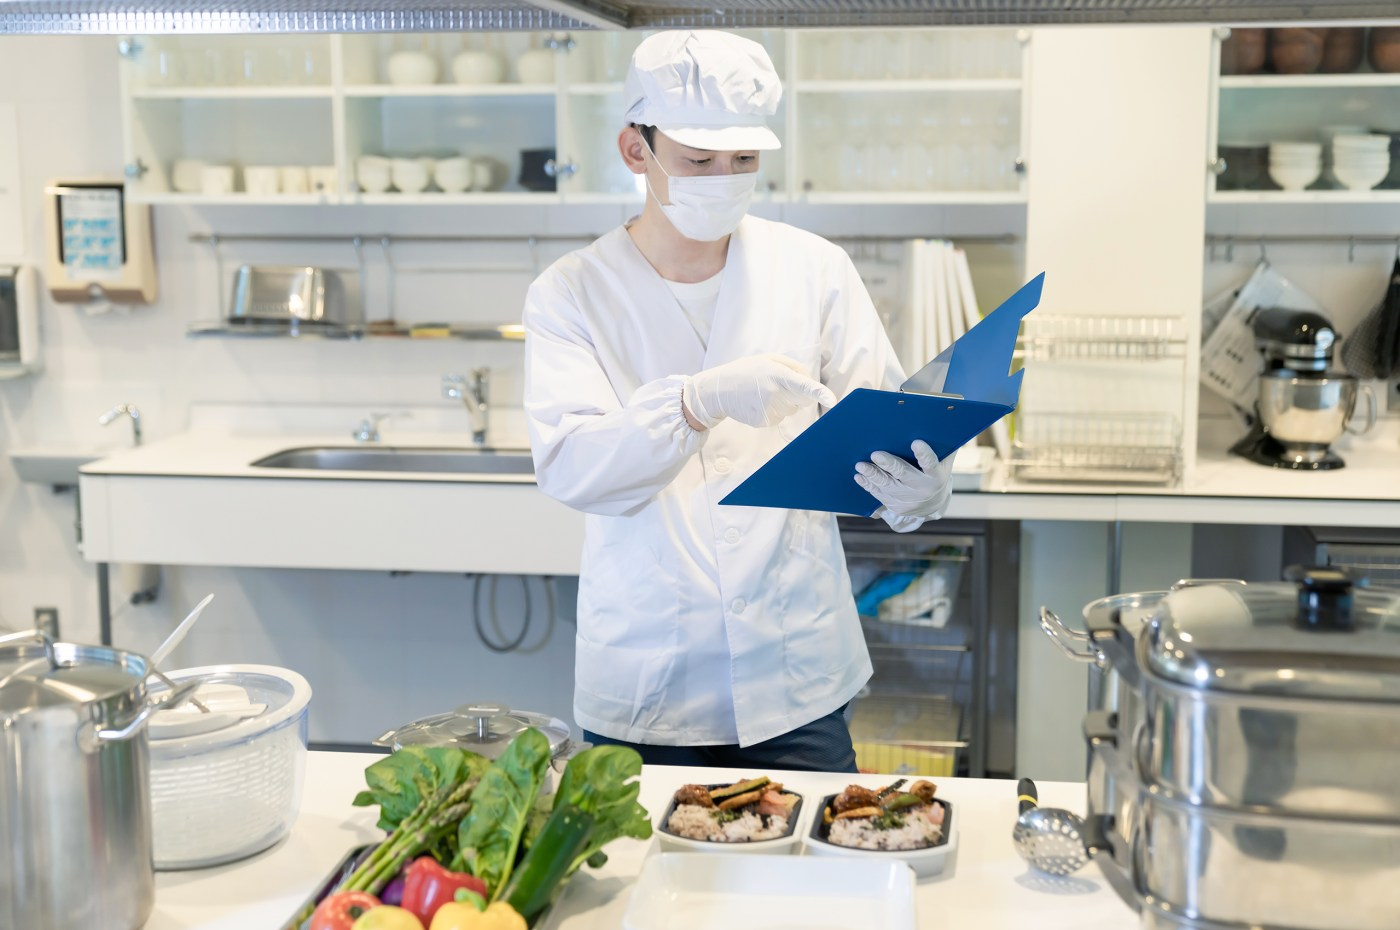 An Asian man in a white coat and hat wearing a white face mask and gloves points to something in a blue folder. He is in a mostly white kitchen, behind him is a sink, some dishes, and a stand mixer. In the foreground, there is a counter with raw vegetables, prepared rice with cooked toppings, hotel pans, a salad spinner, and a stockpot.